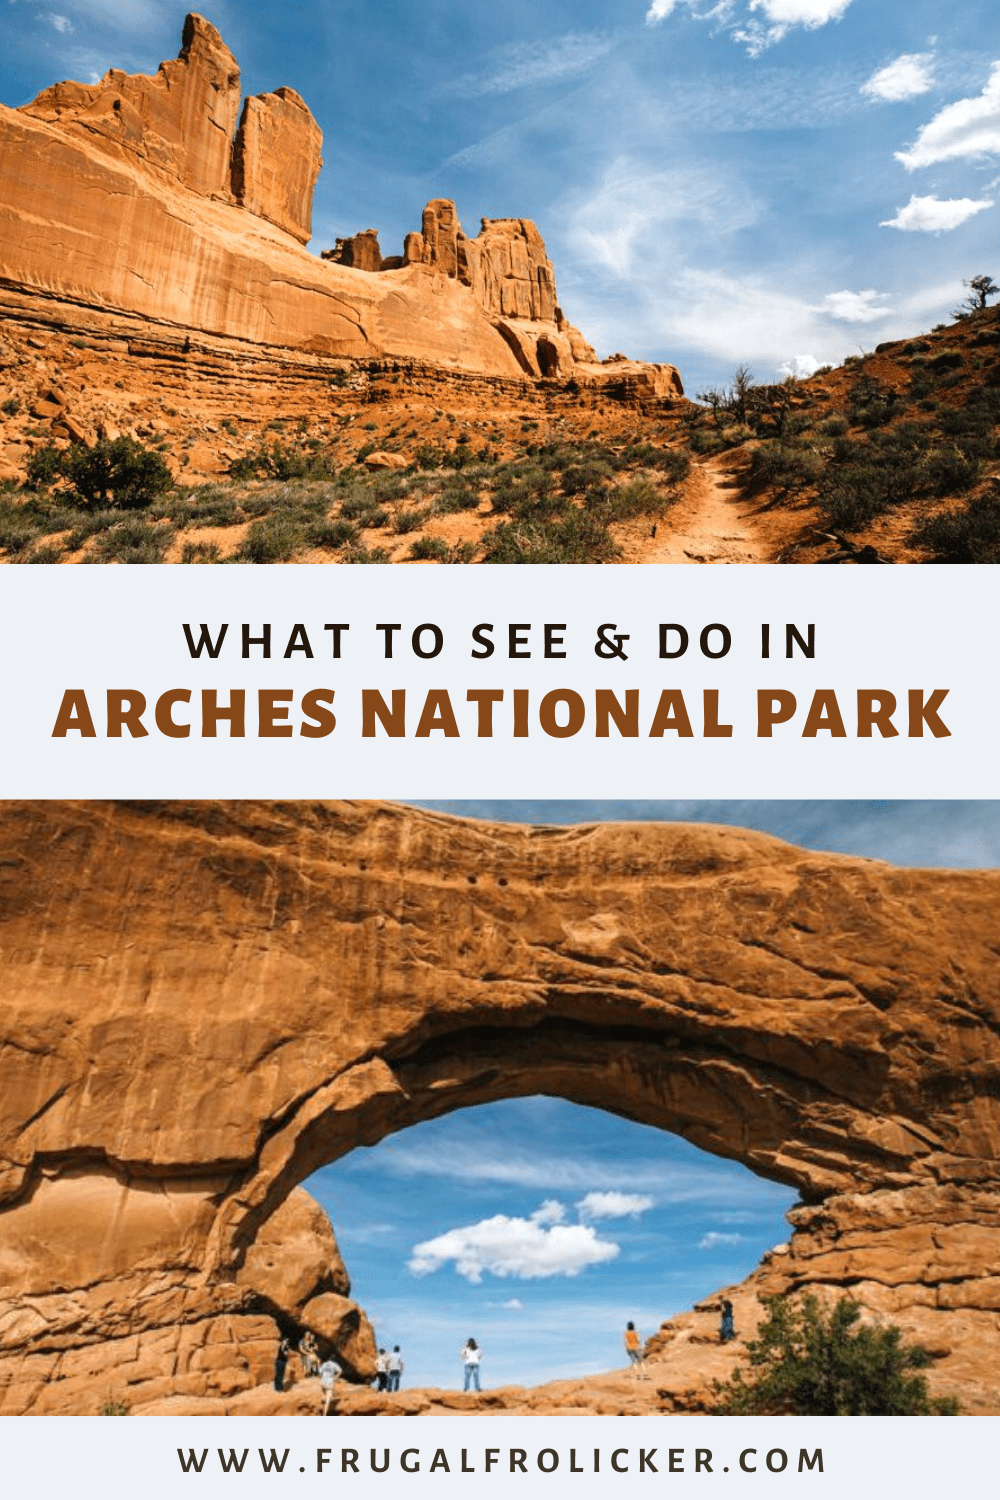 What to see and do at Arches National Park